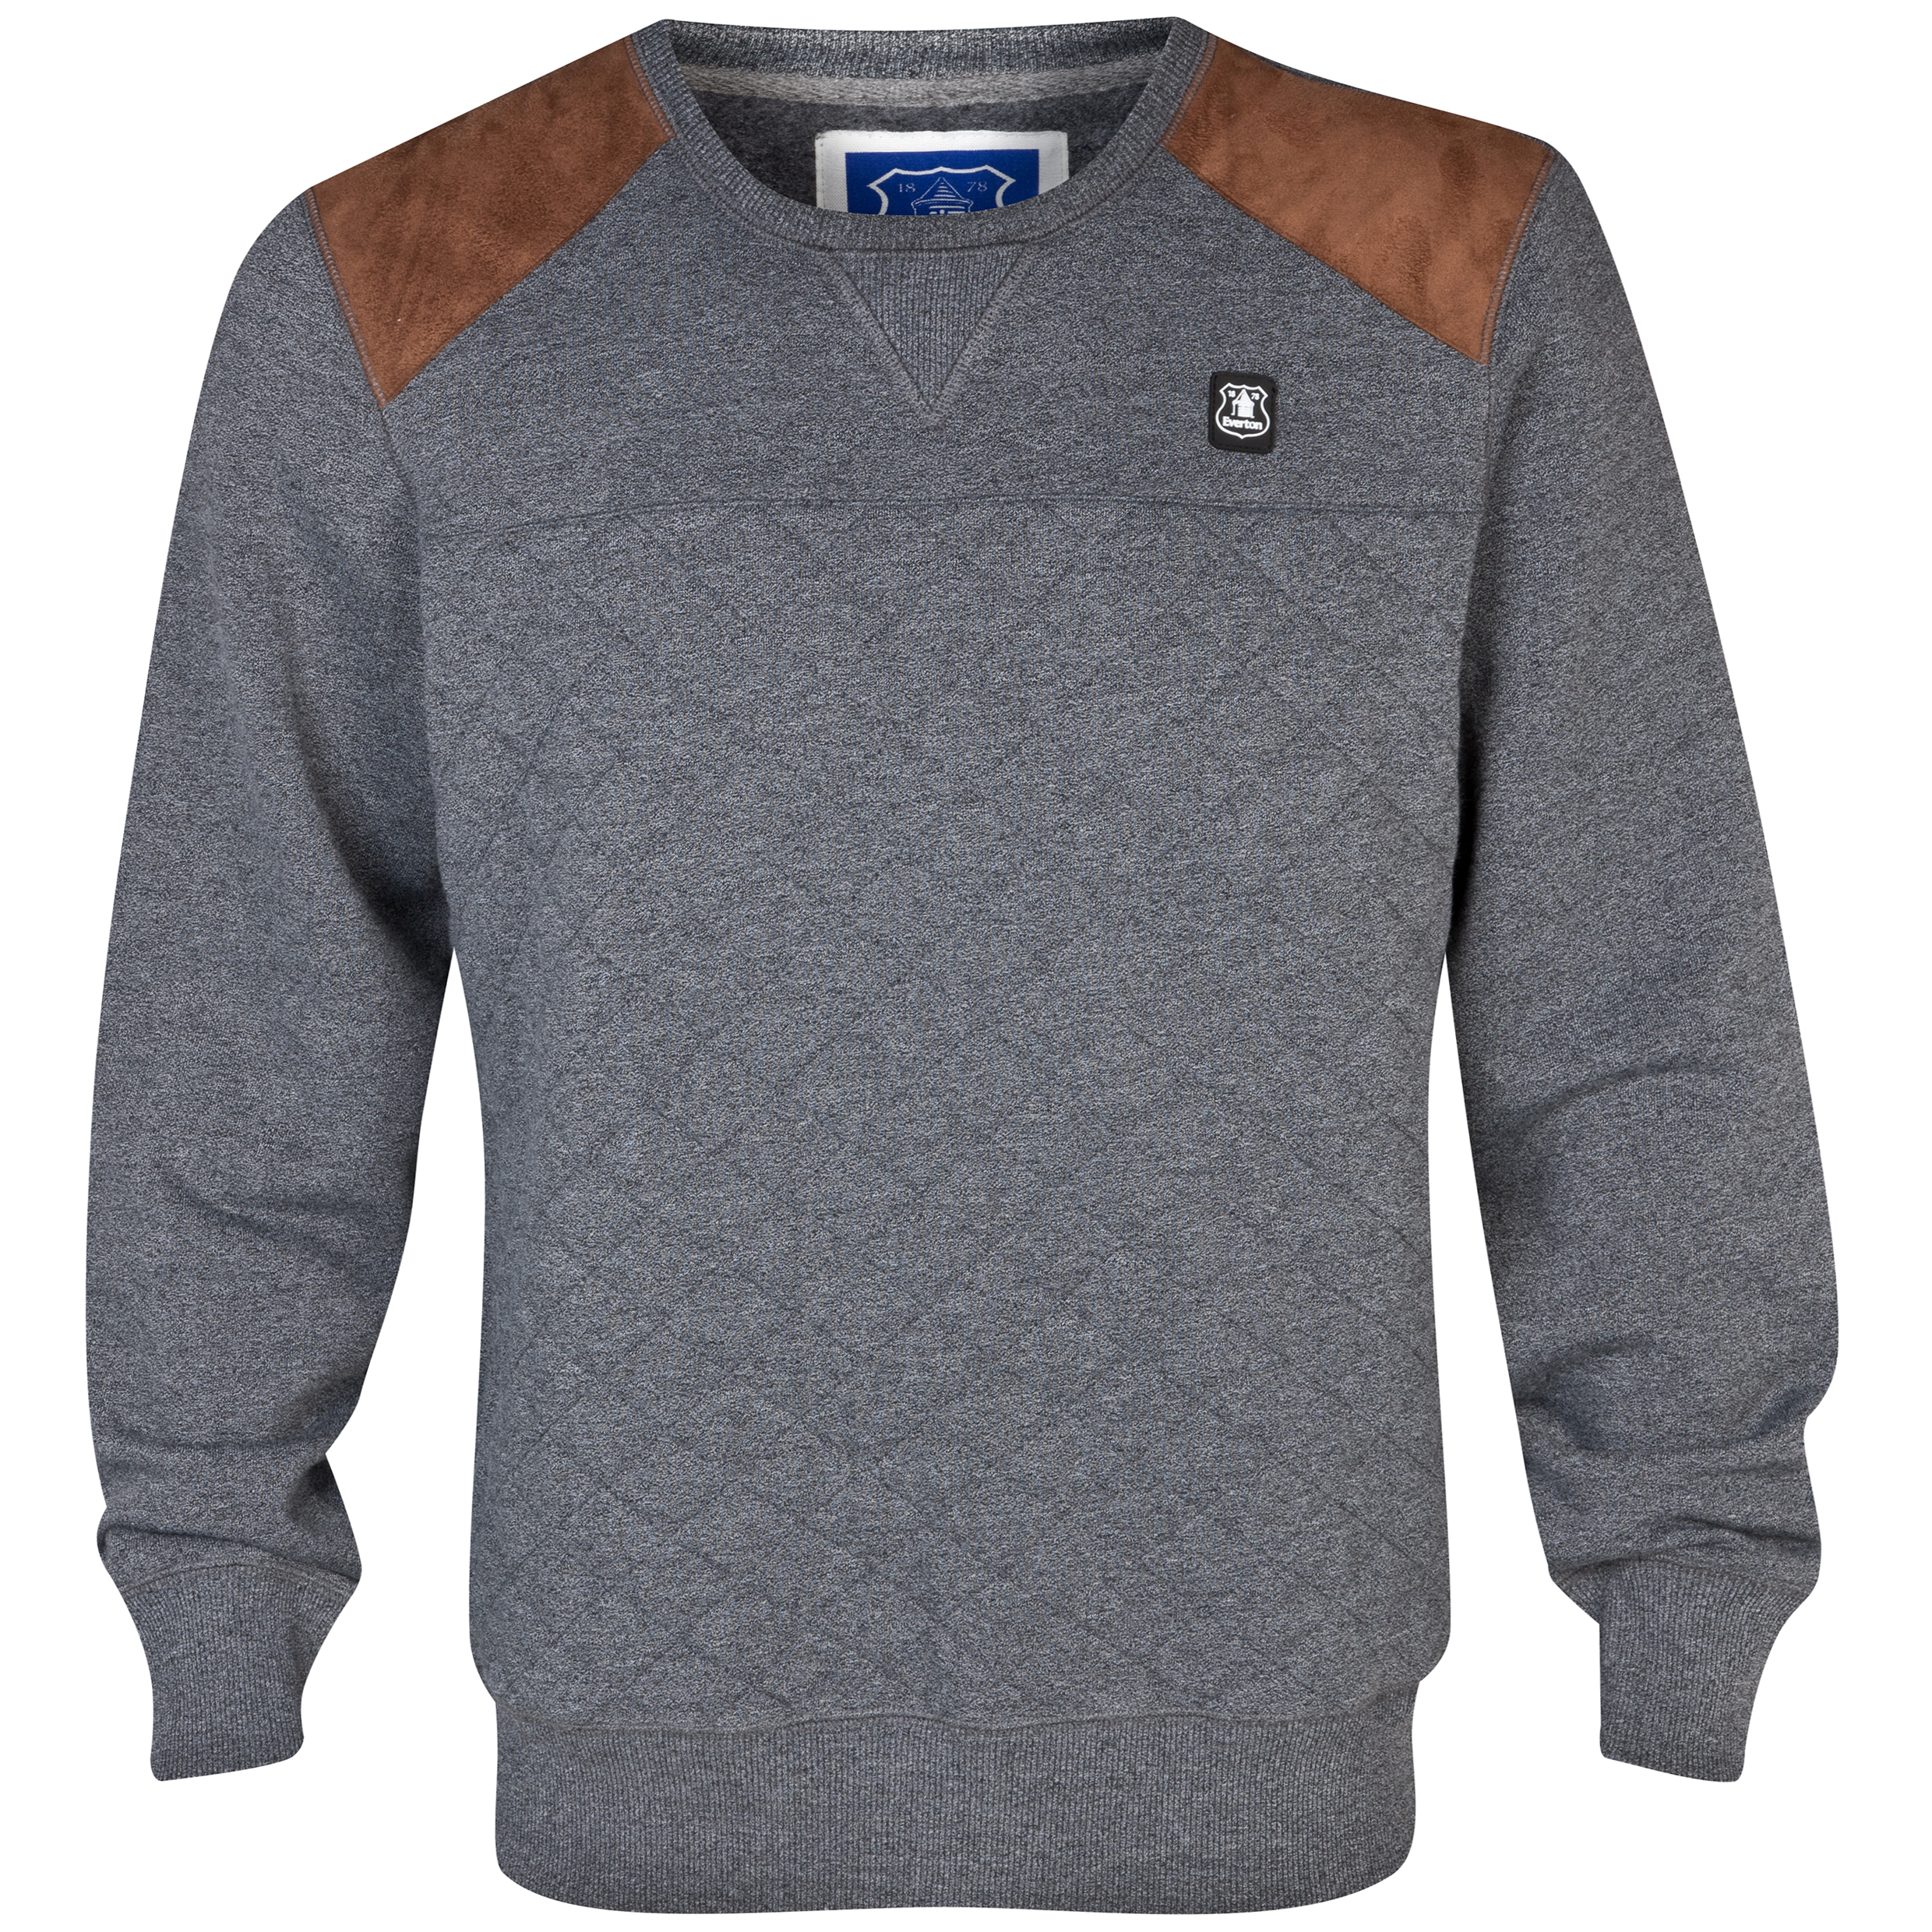 Everton Rawlins Crew Neck Sweater - Mens Charcoal